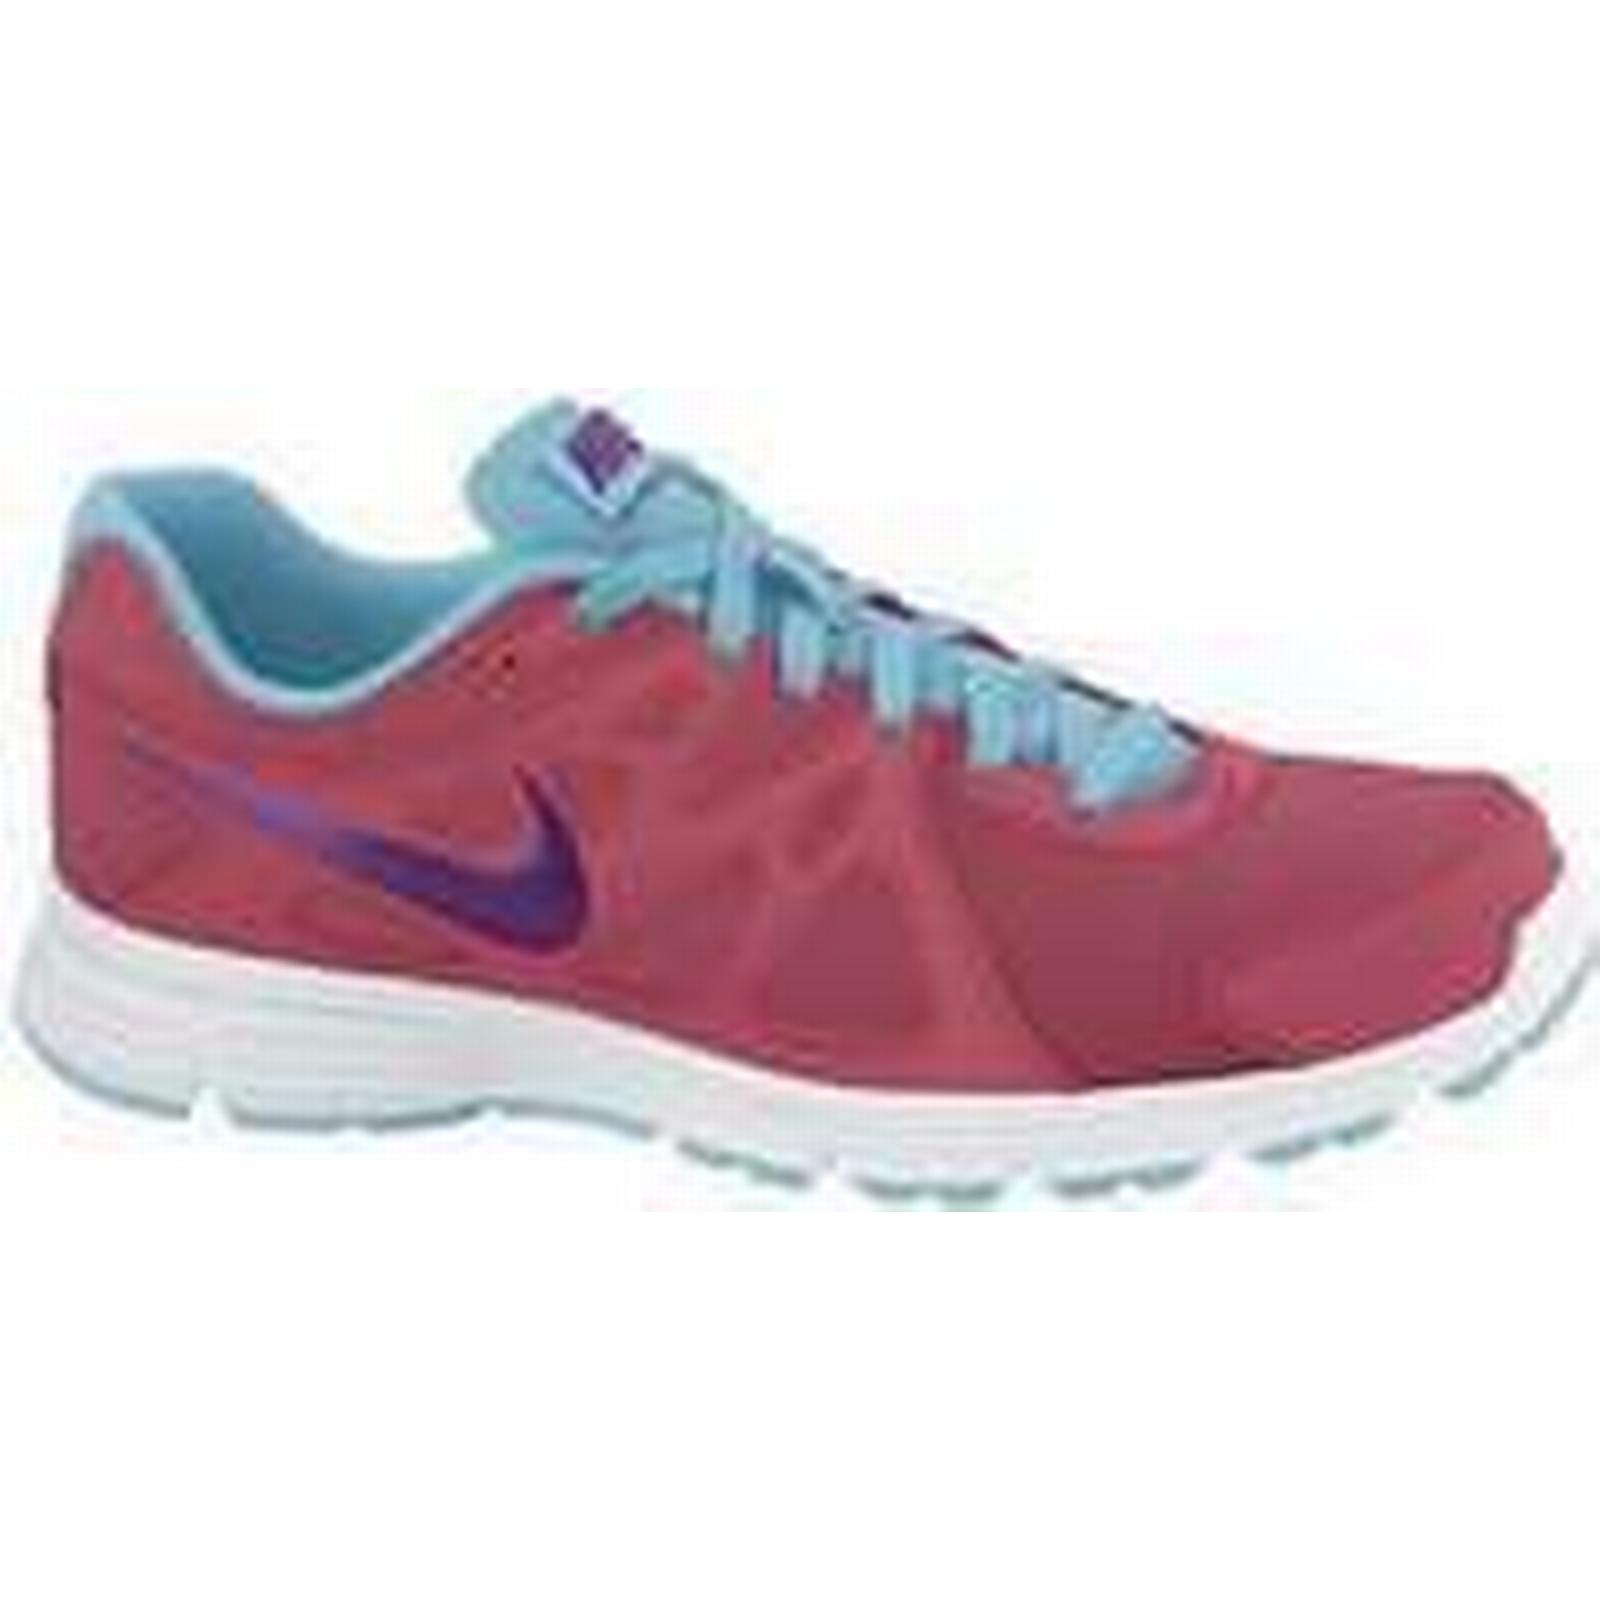 Spartoo.co.uk women's Nike Wmns Revolution 2 Msl women's Spartoo.co.uk Shoes (Trainers) in Pink 5606d4